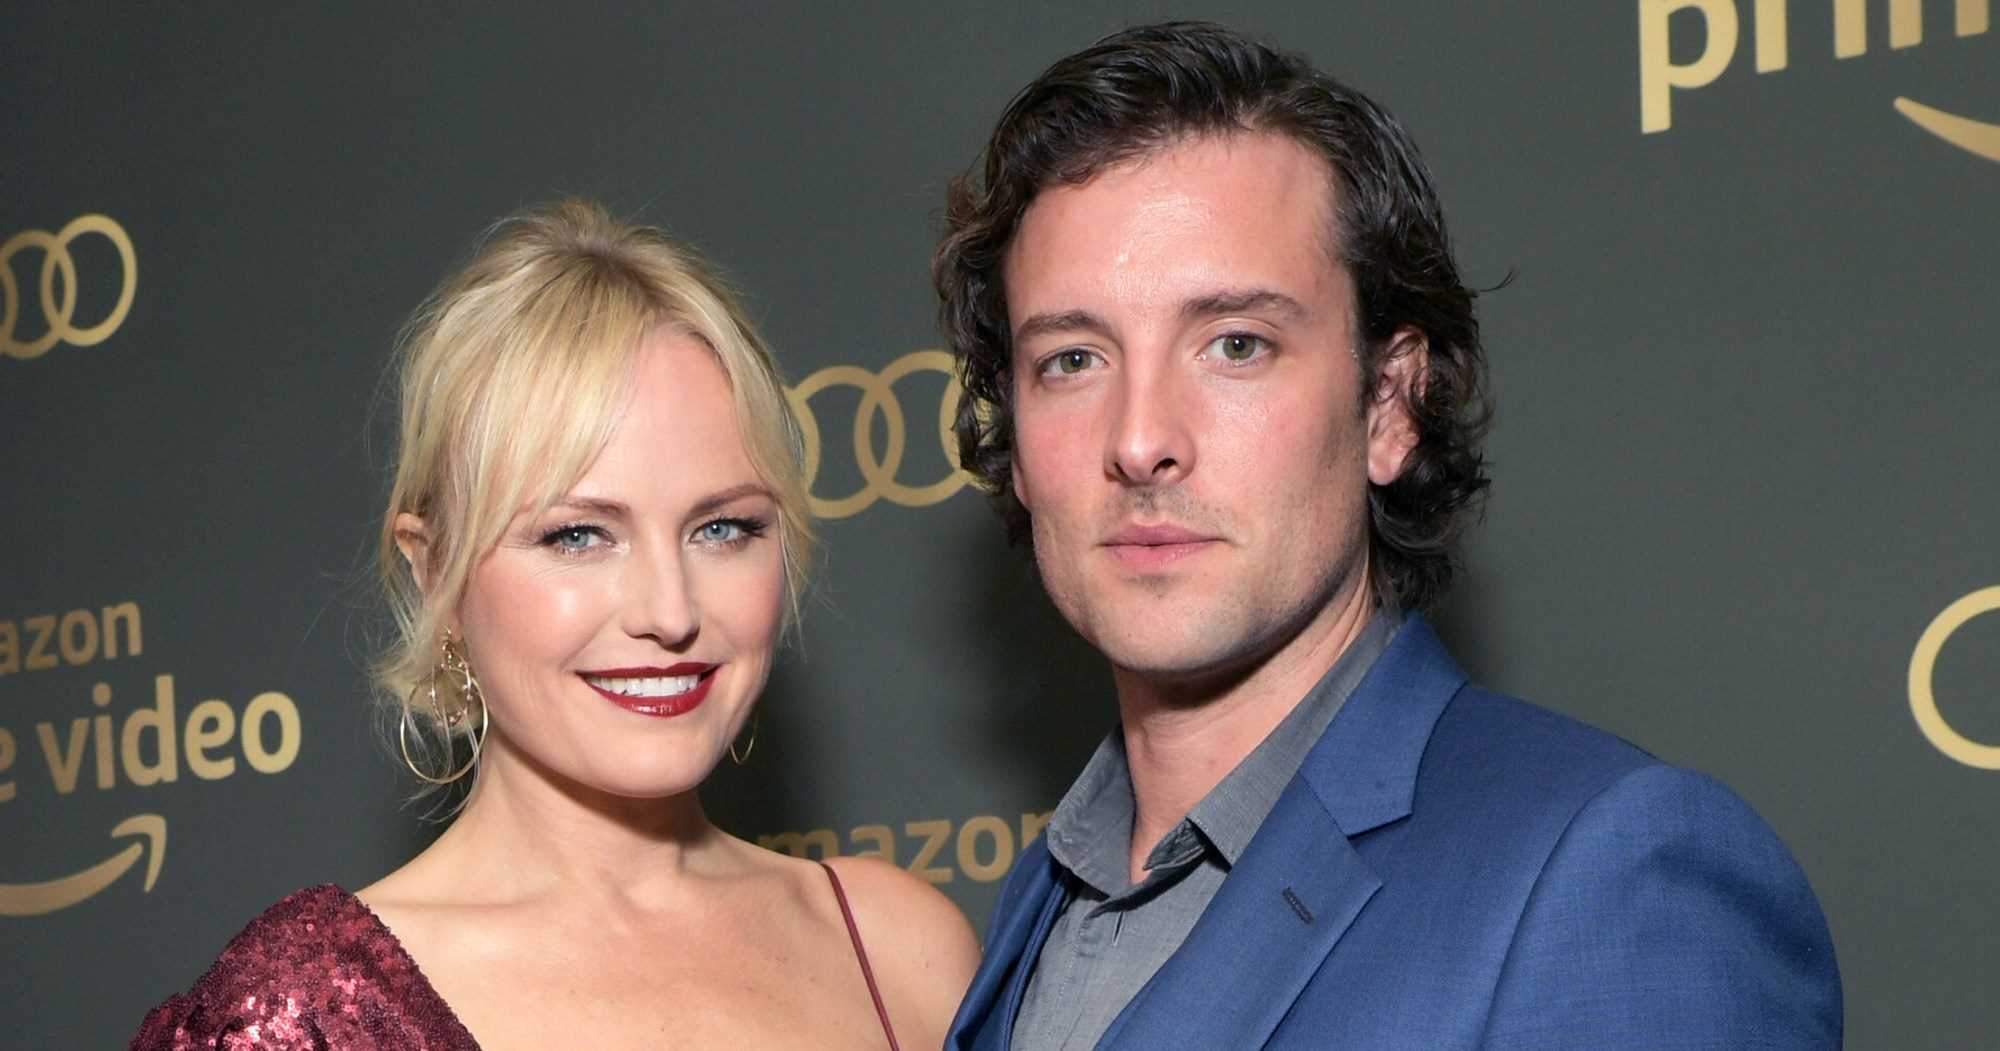 Malin Akerman, Jack Donnelly Show PDA in Front of Her Son